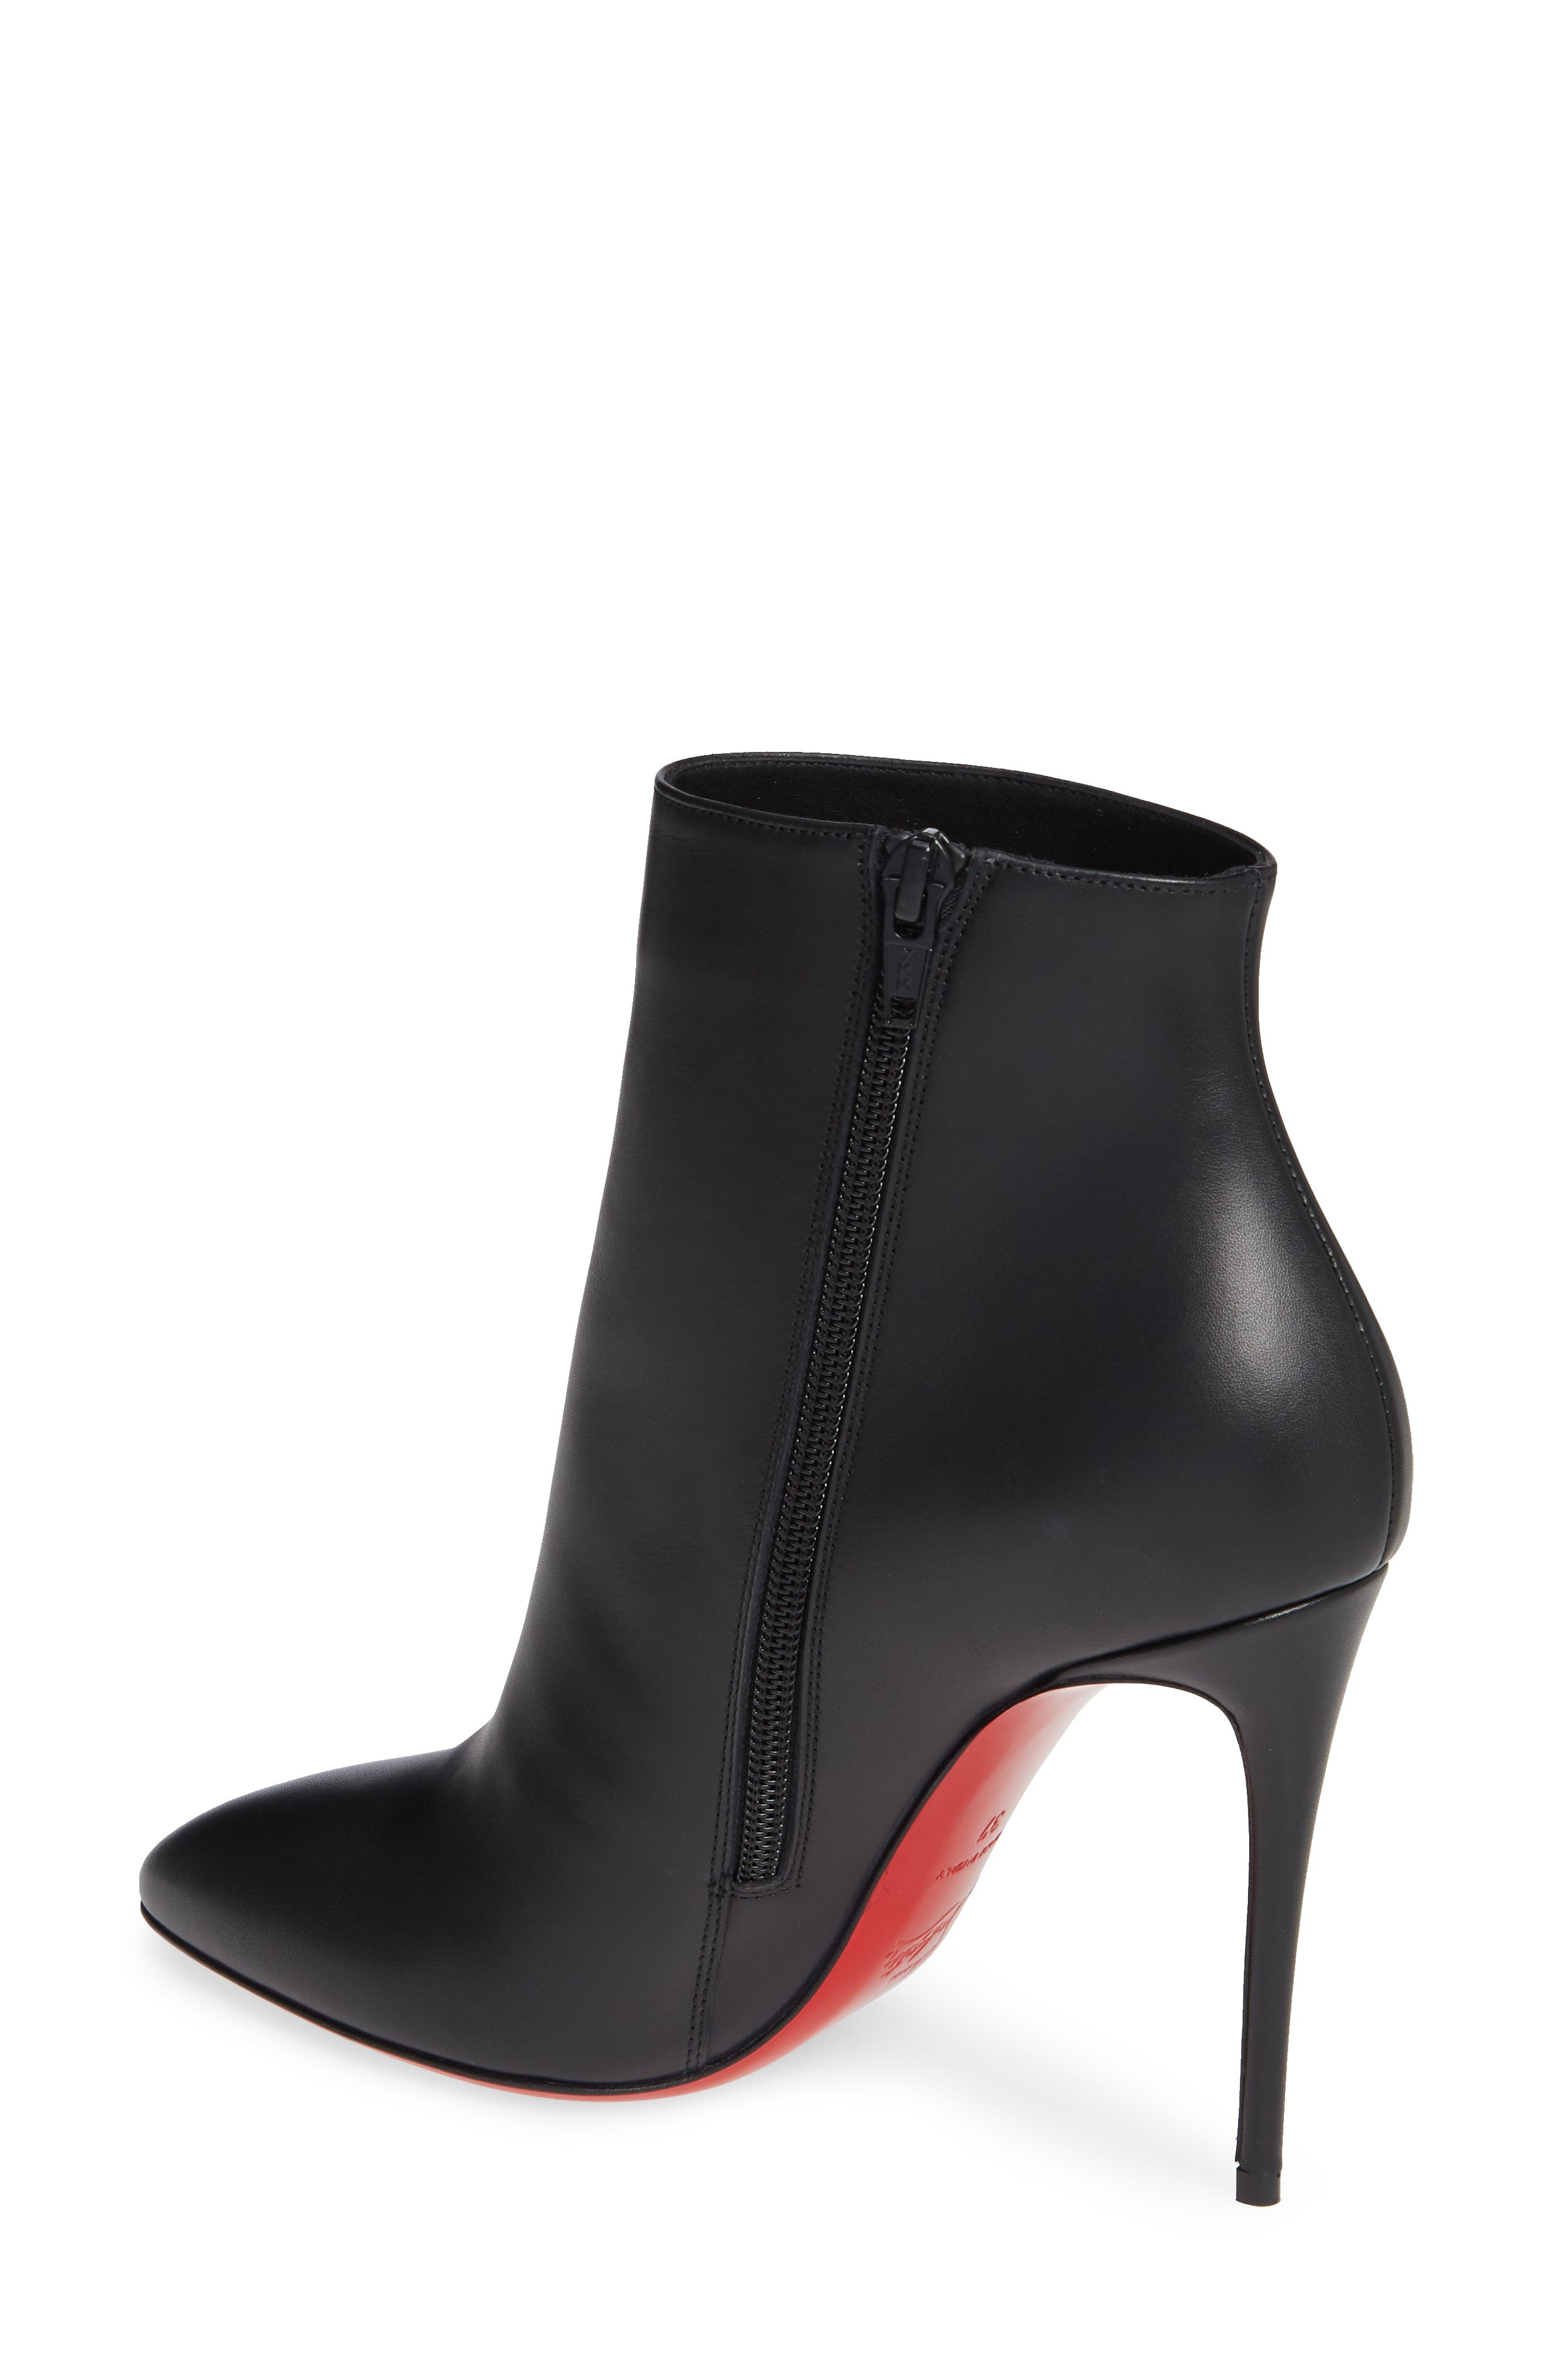 CHRISTIAN LOUBOUTIN, Eloise Pointy Toe Bootie, Alternate thumbnail 2, color, BLACK